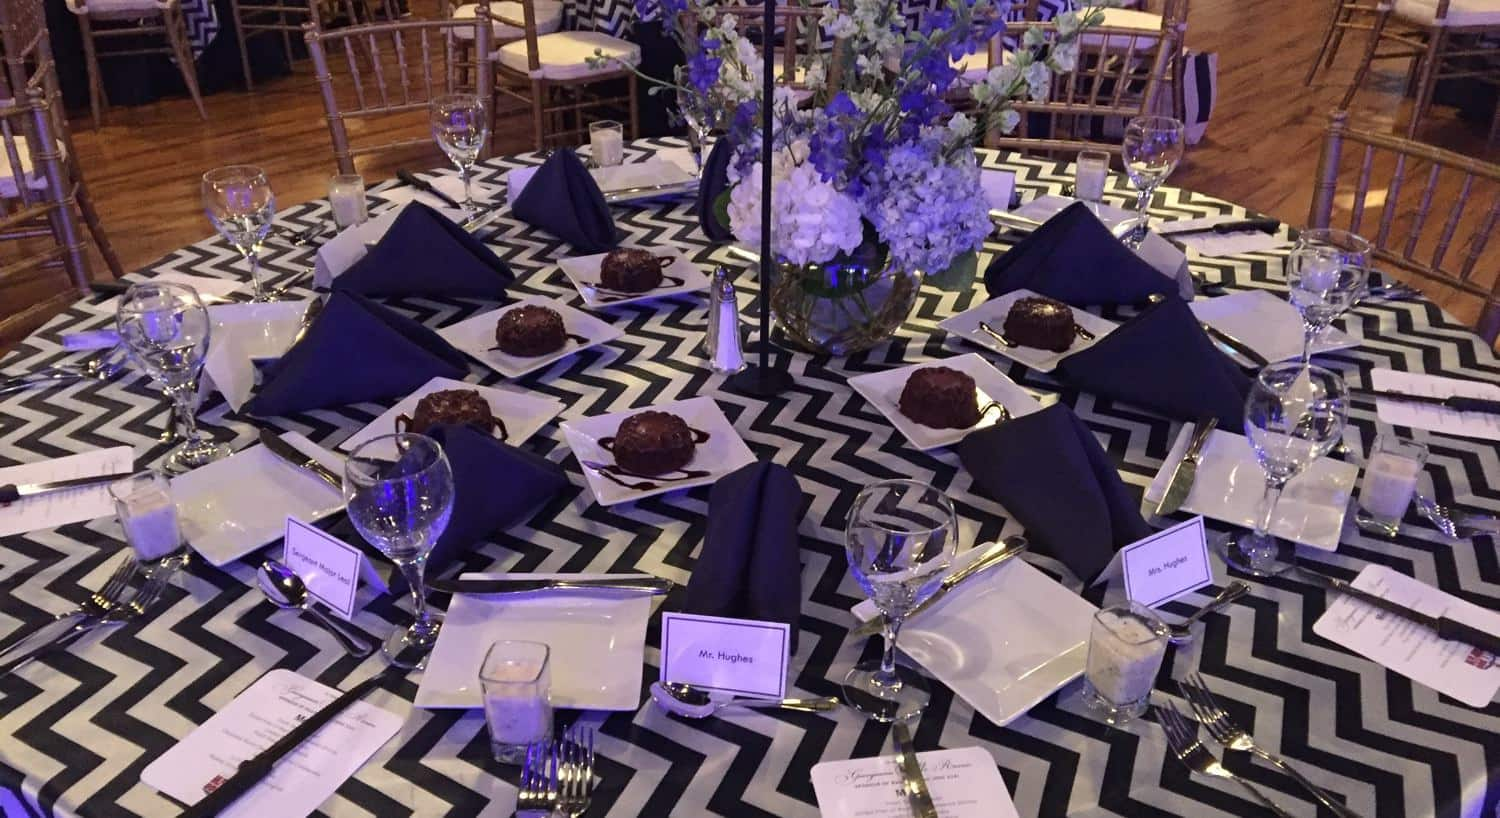 Overview of wedding table with black and white cloth, purple and white flowers, name cards, and chocolate desserts